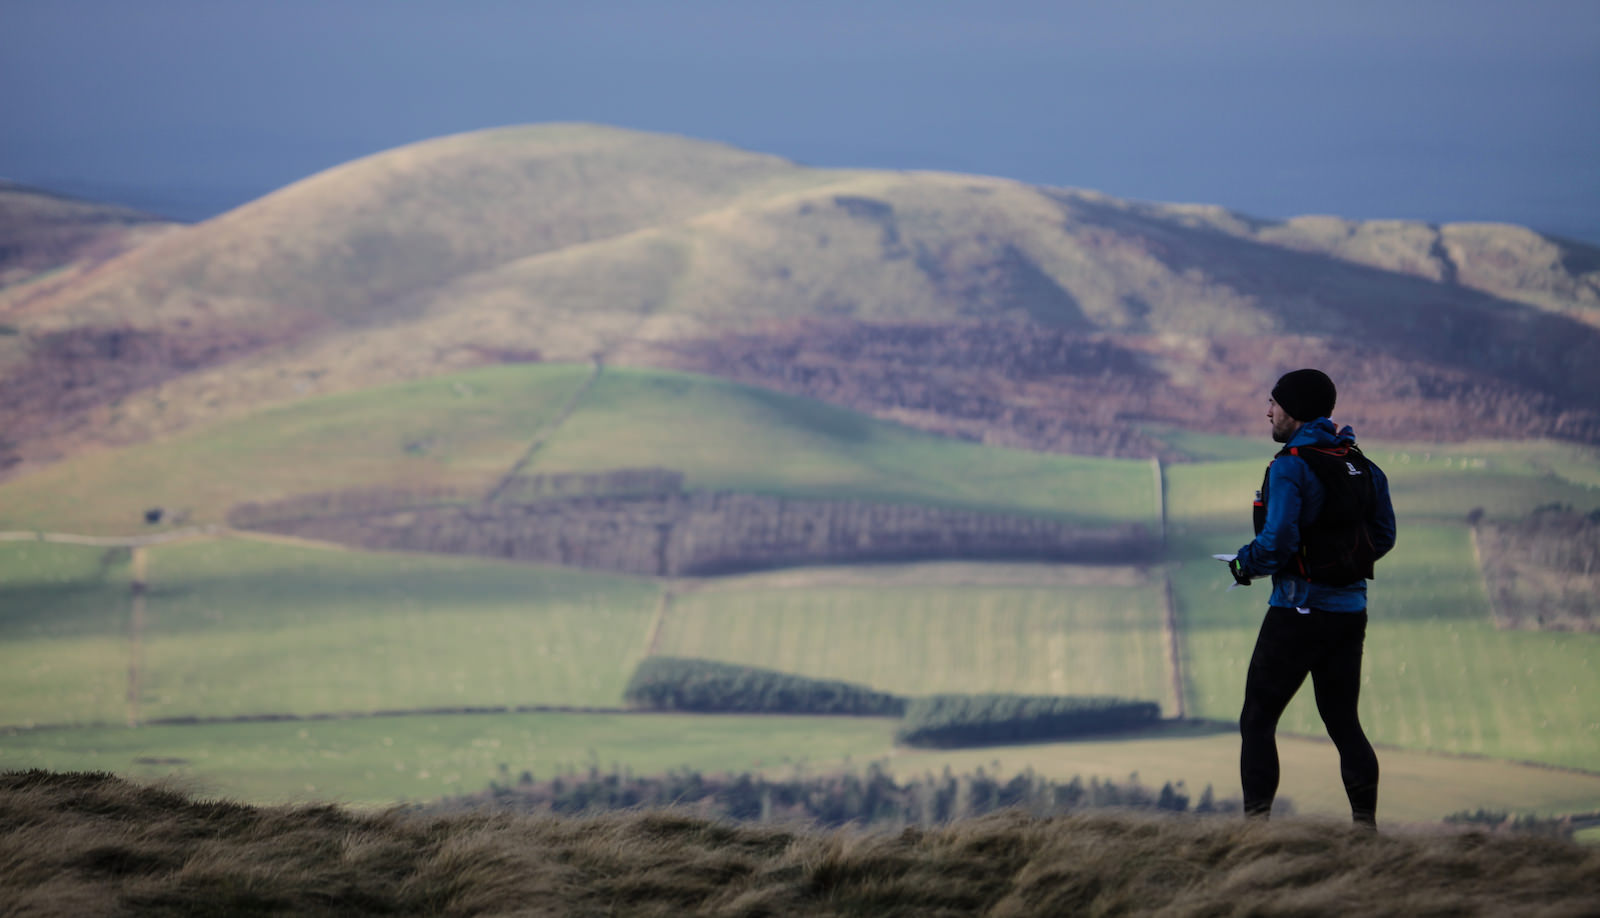 I was blown away by how peaceful it was in the Cheviots